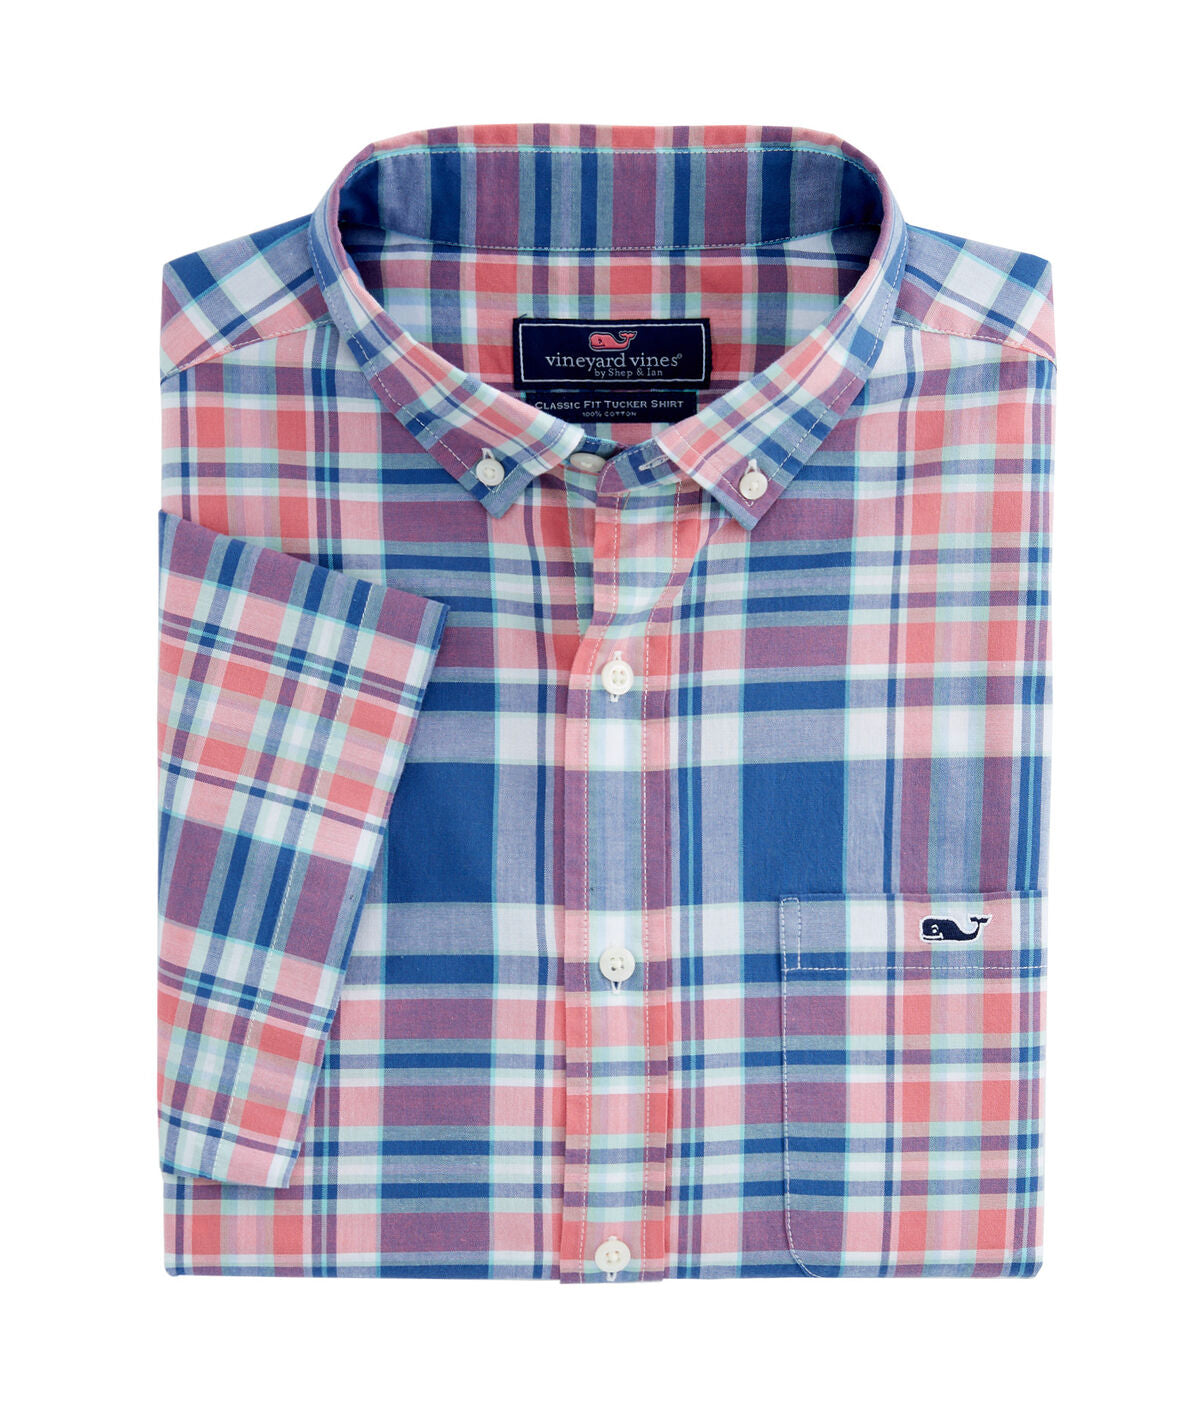 Freeport Plaid Classic Tucker